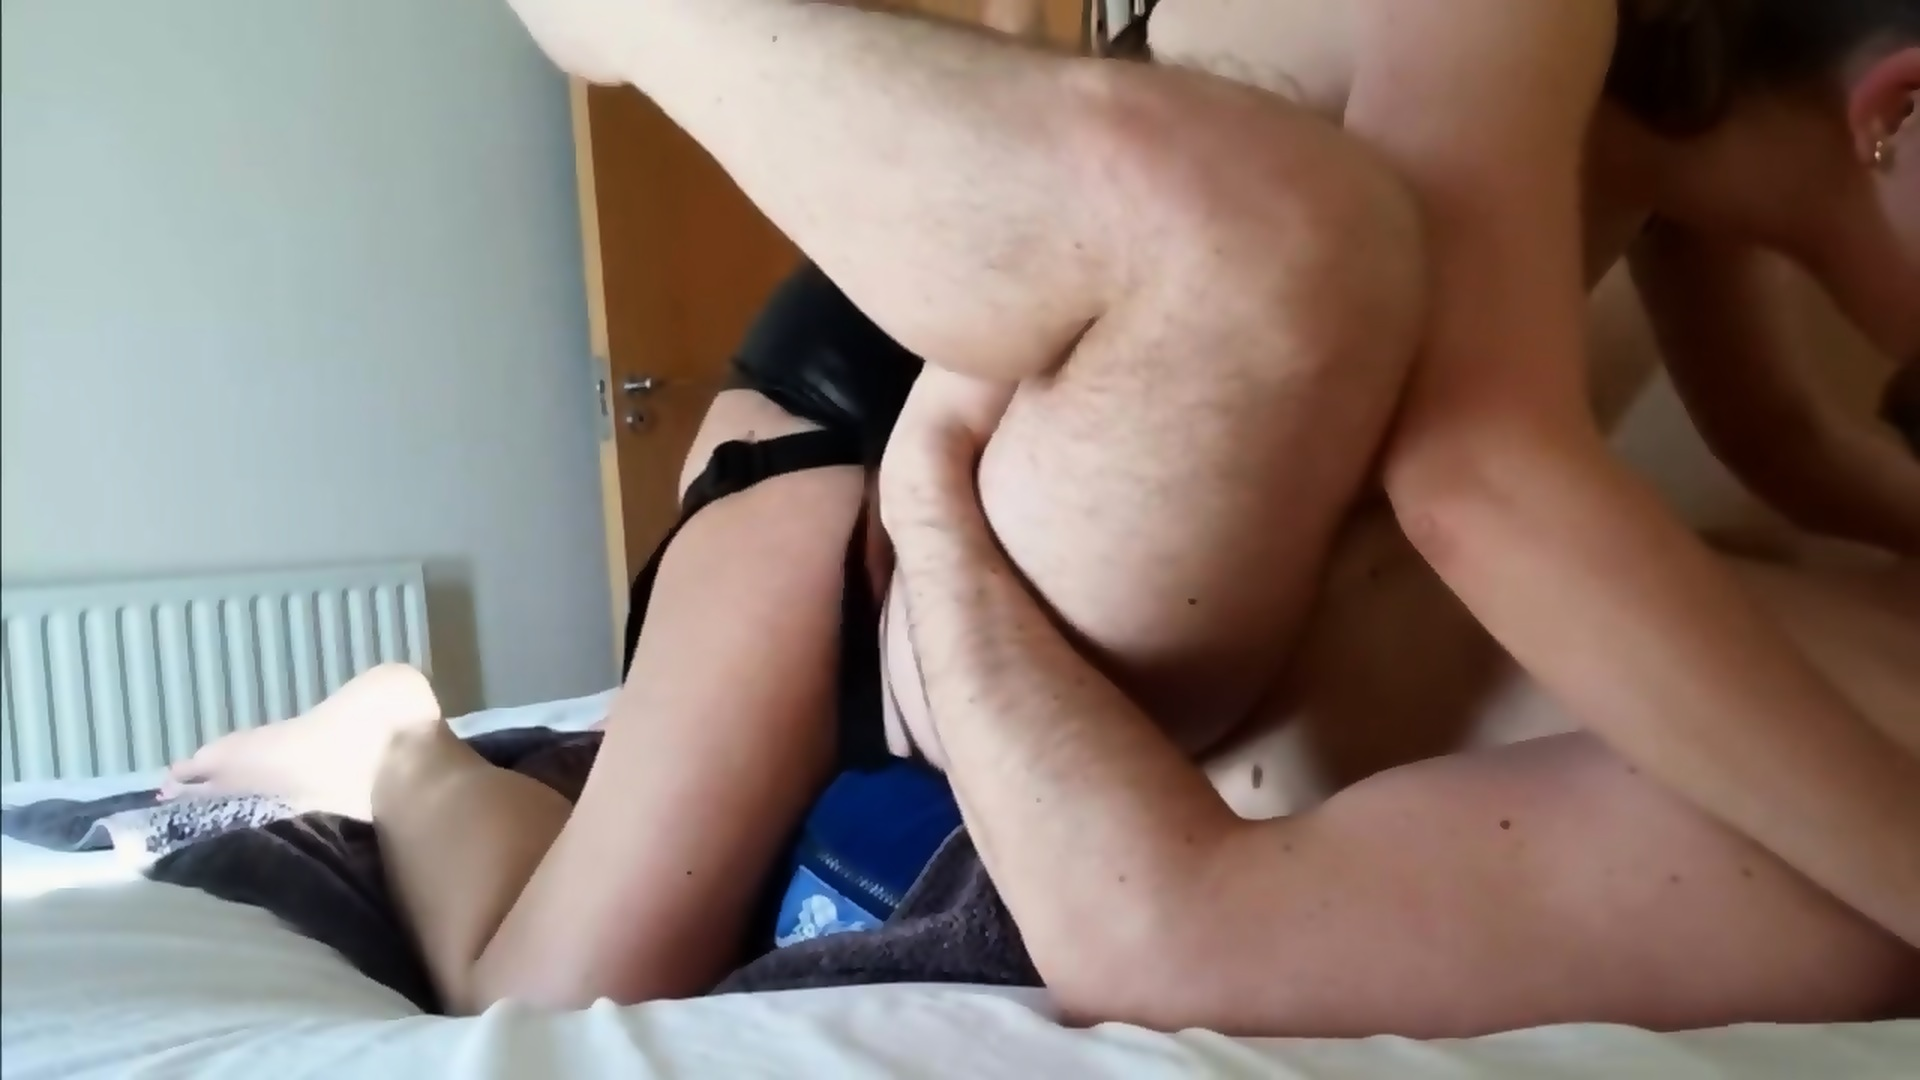 Amateur Girl Passionately Pegging Him To Massive Cumshot - She Can Pound! -  scene 11